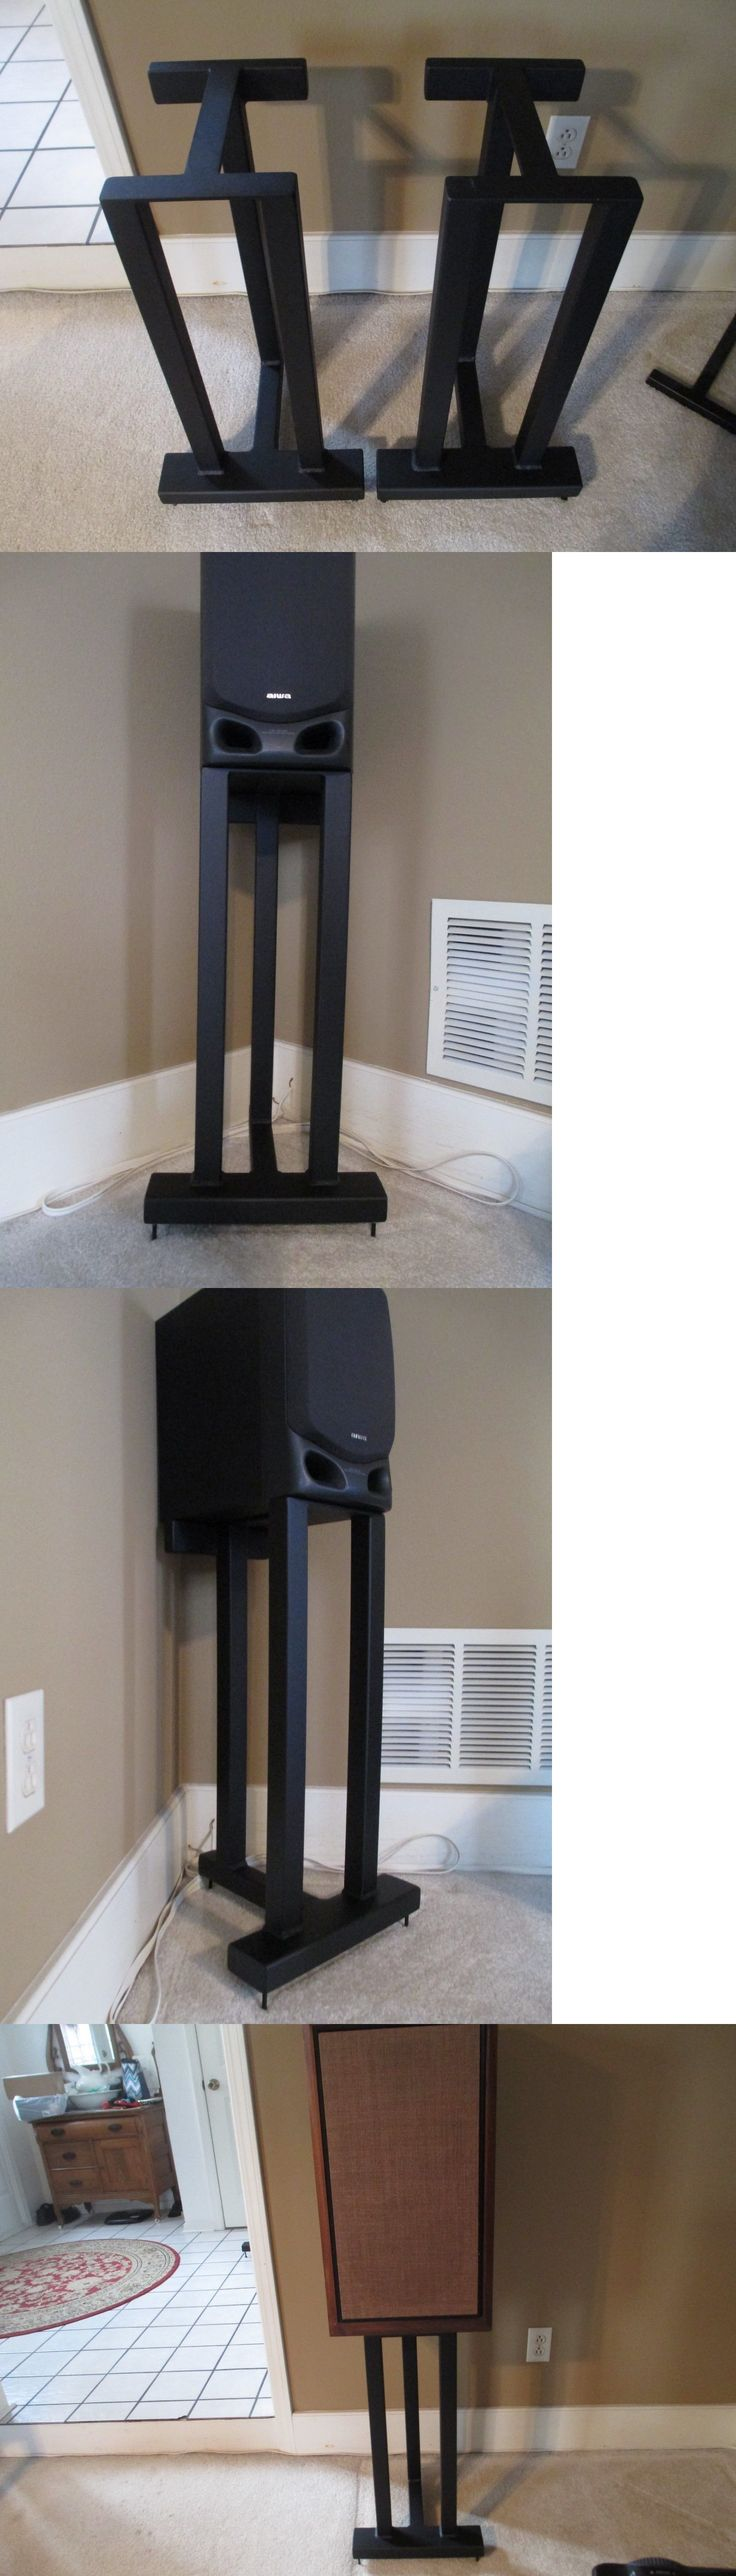 Speaker Mounts and Stands: Aandm Tricolumn Pedestal Stands 24 Tall 8 W X 11 D Platform Heavy 11 Gauge Steel -> BUY IT NOW ONLY: $350 on eBay!